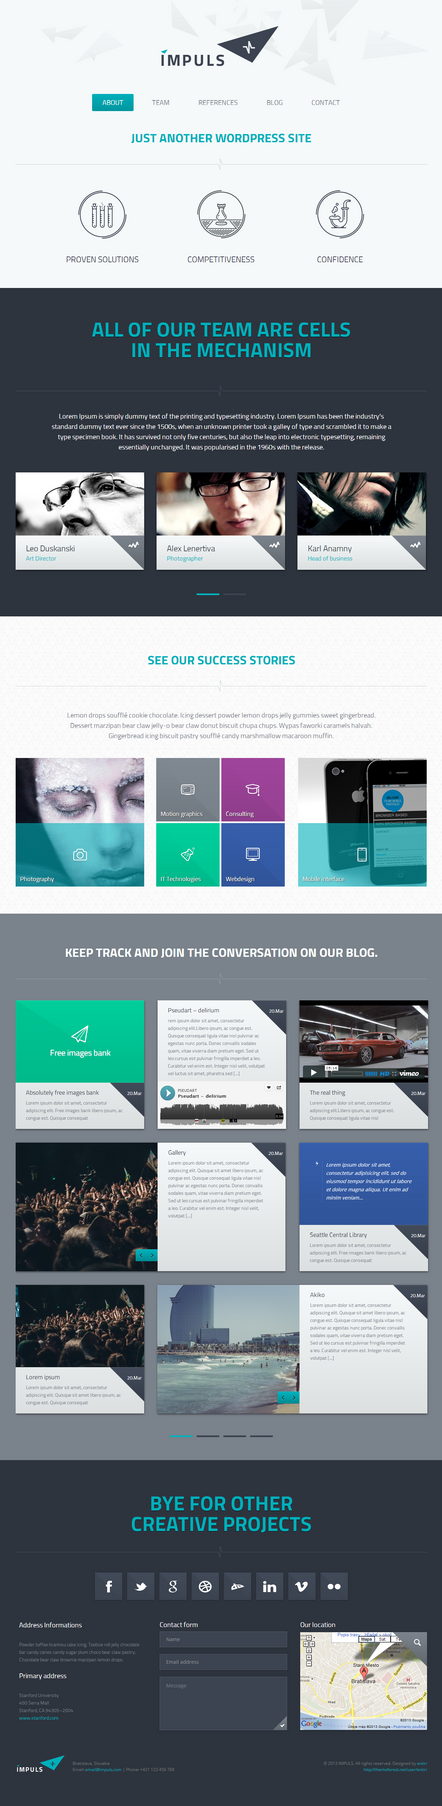 IMPULS a responsive WordPress Theme by the-webdesign